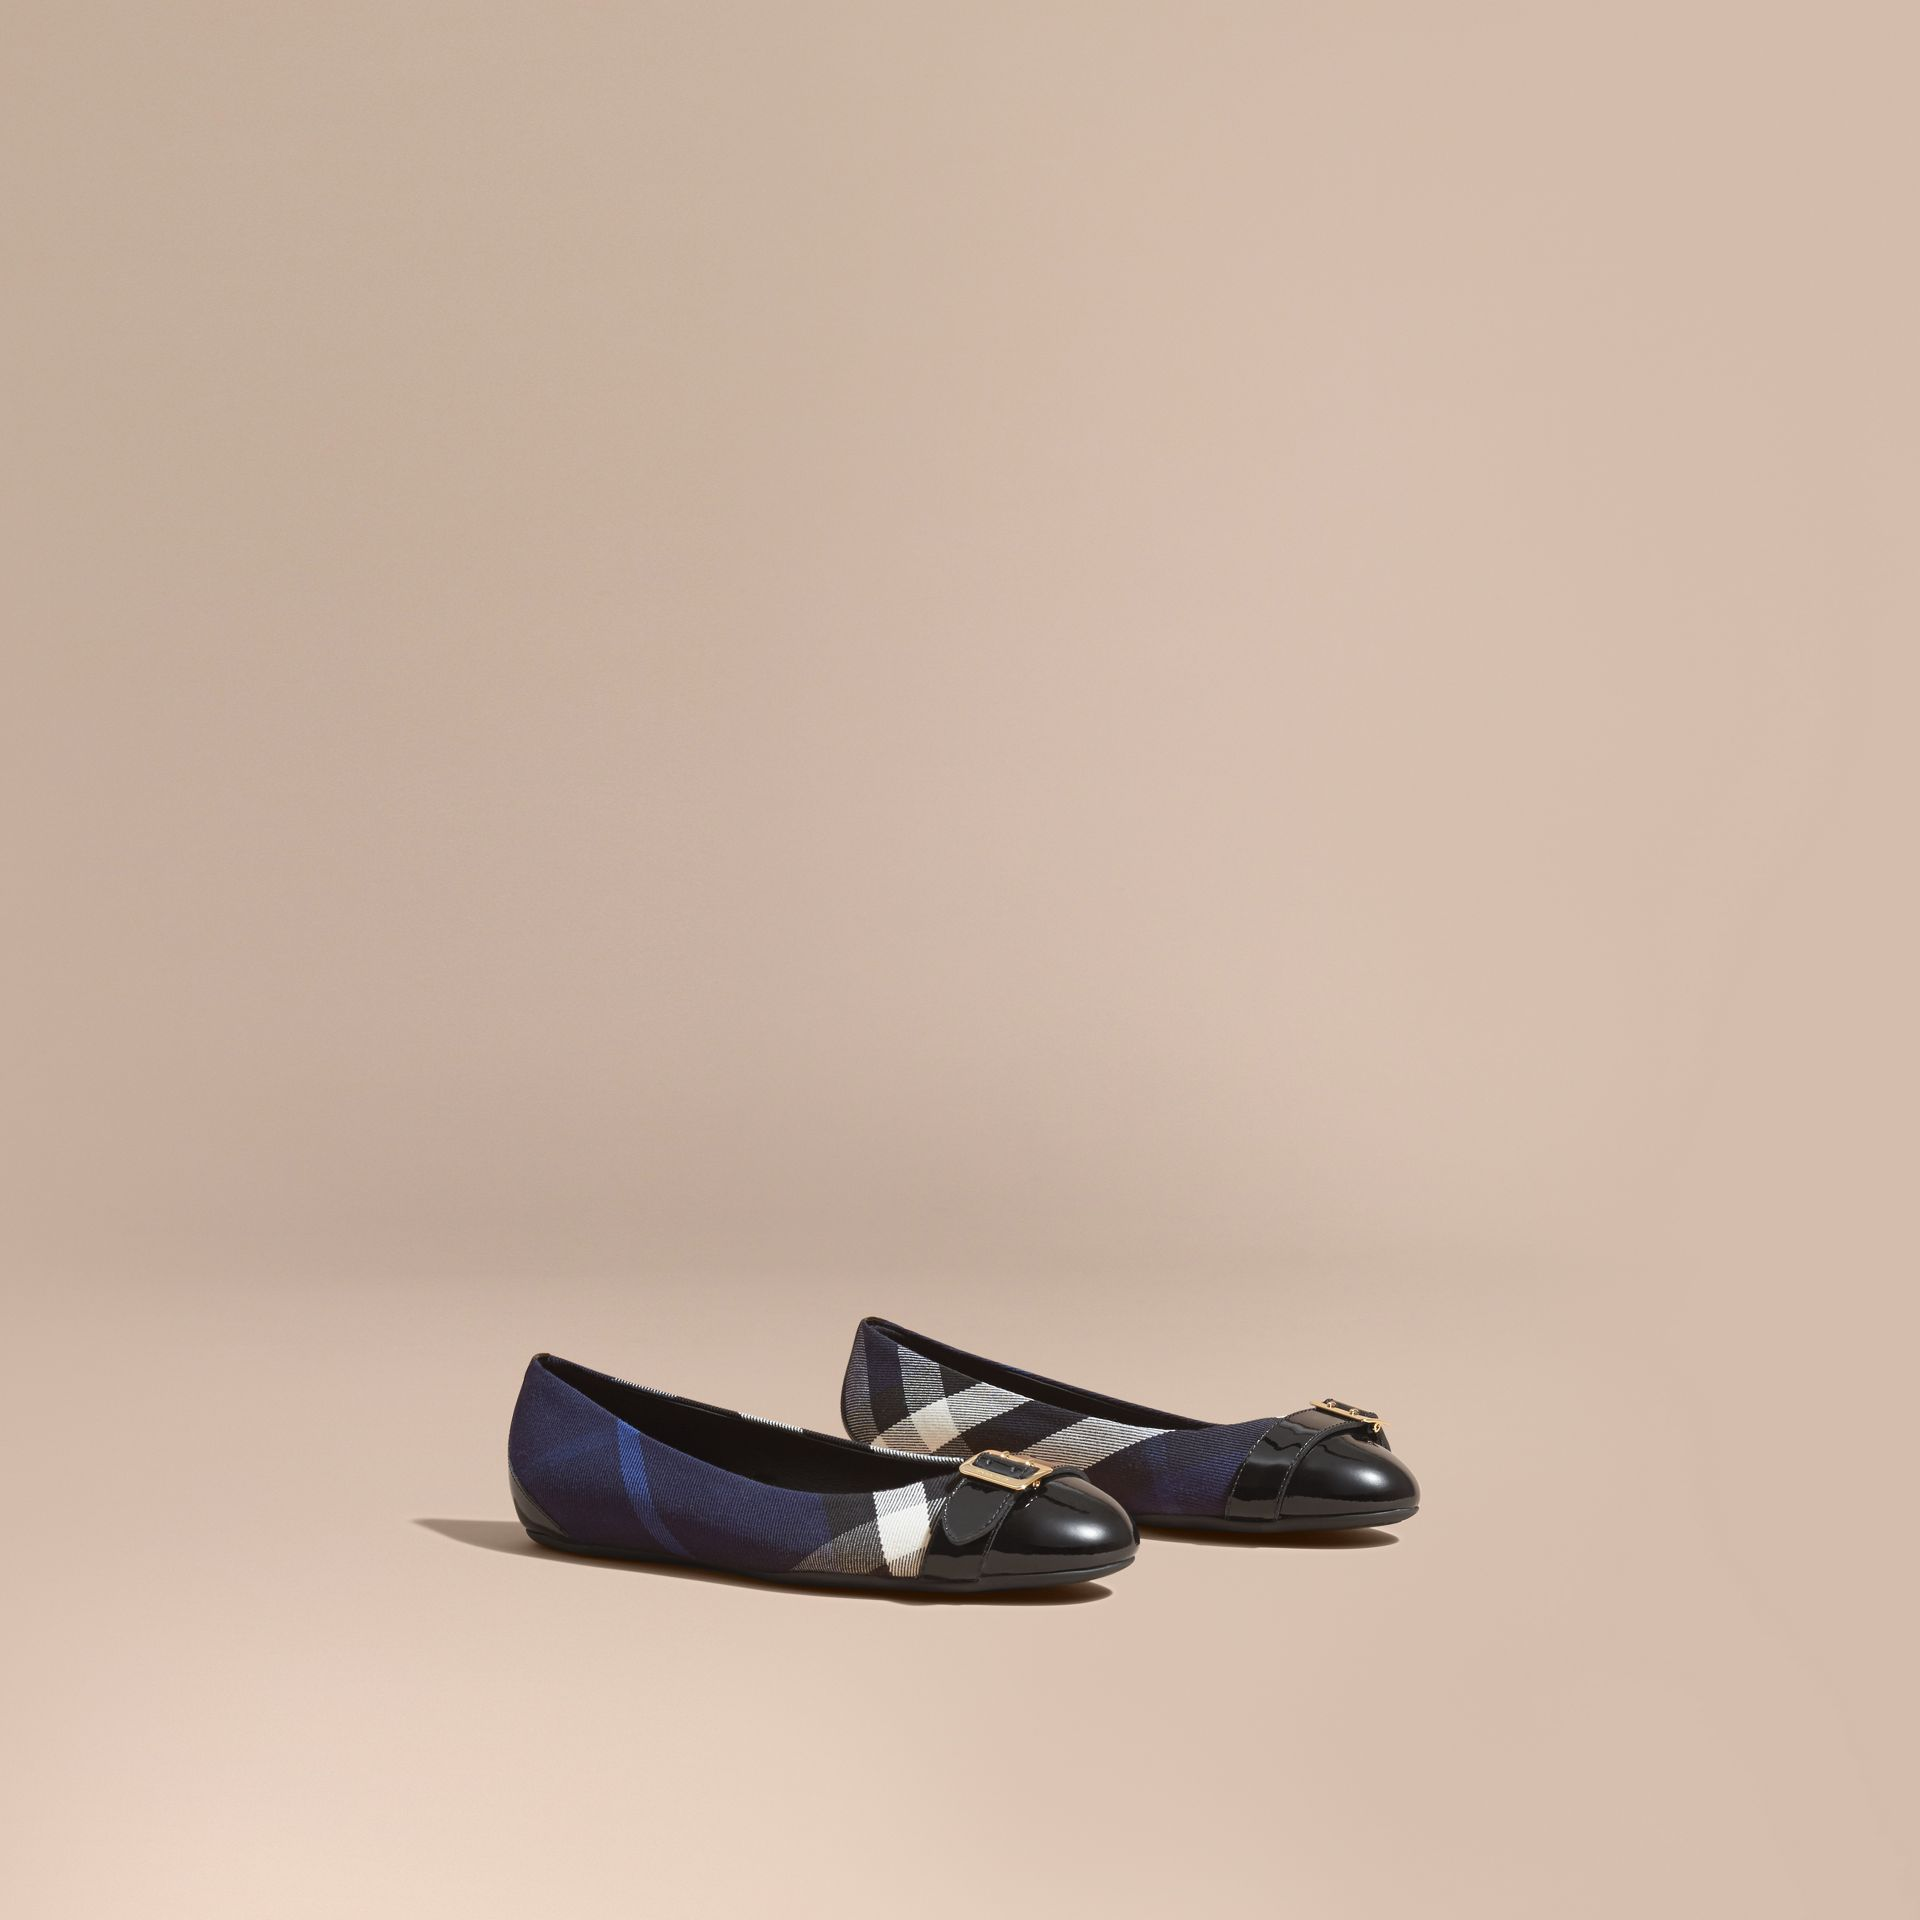 Buckle Detail House Check and Patent Leather Ballerinas Indigo Blue - gallery image 1